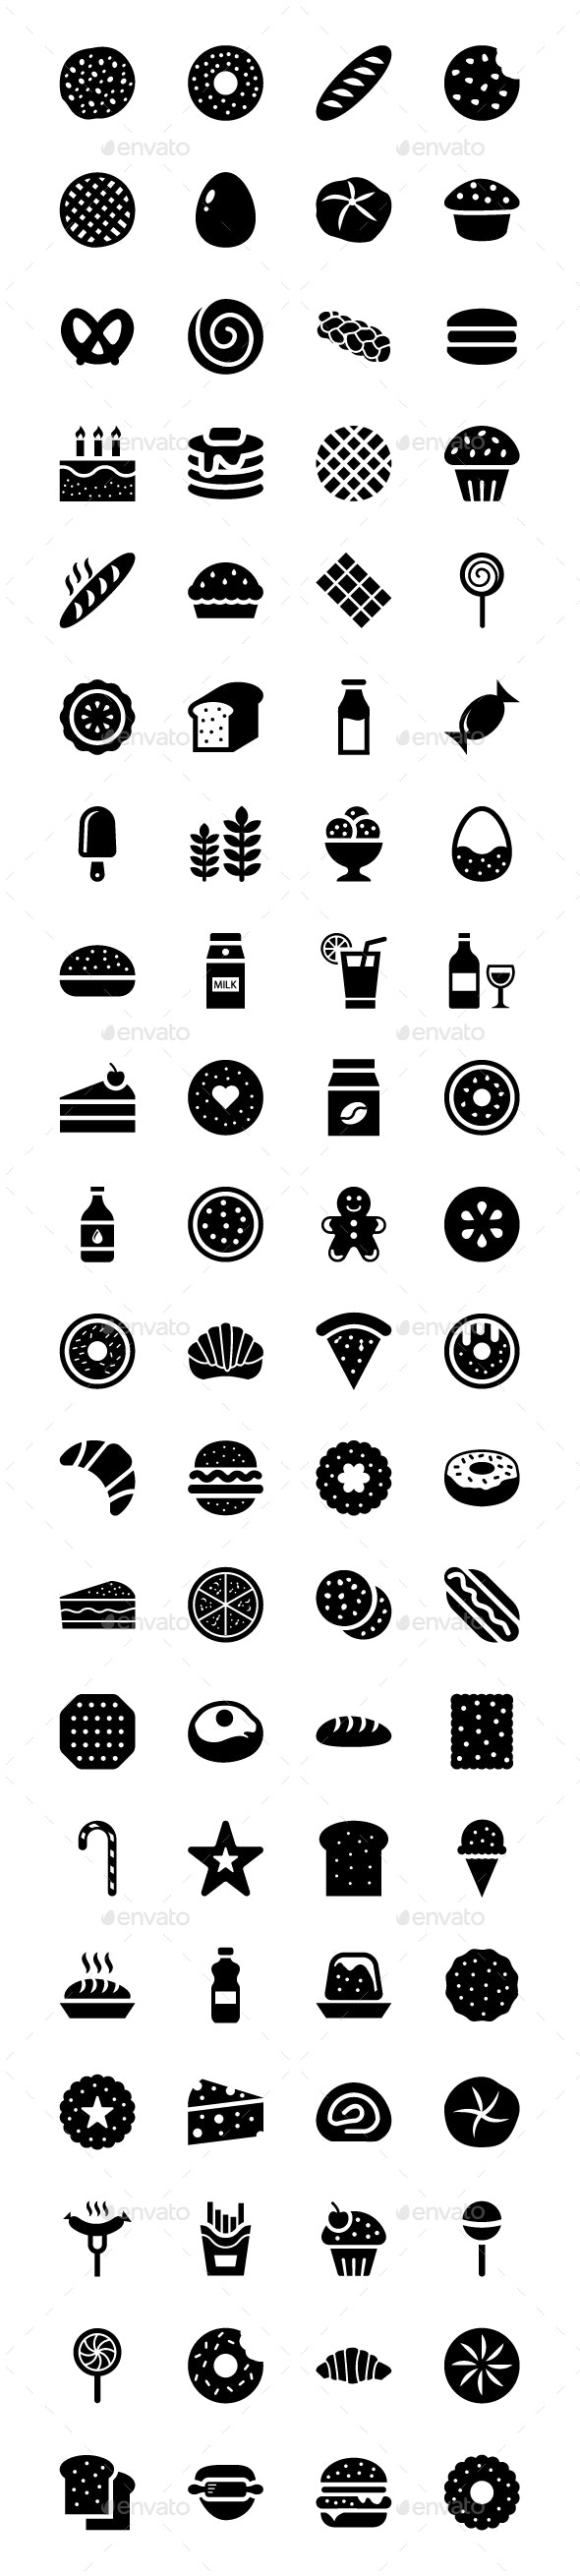 80 Bakery Vector Icons - Icons